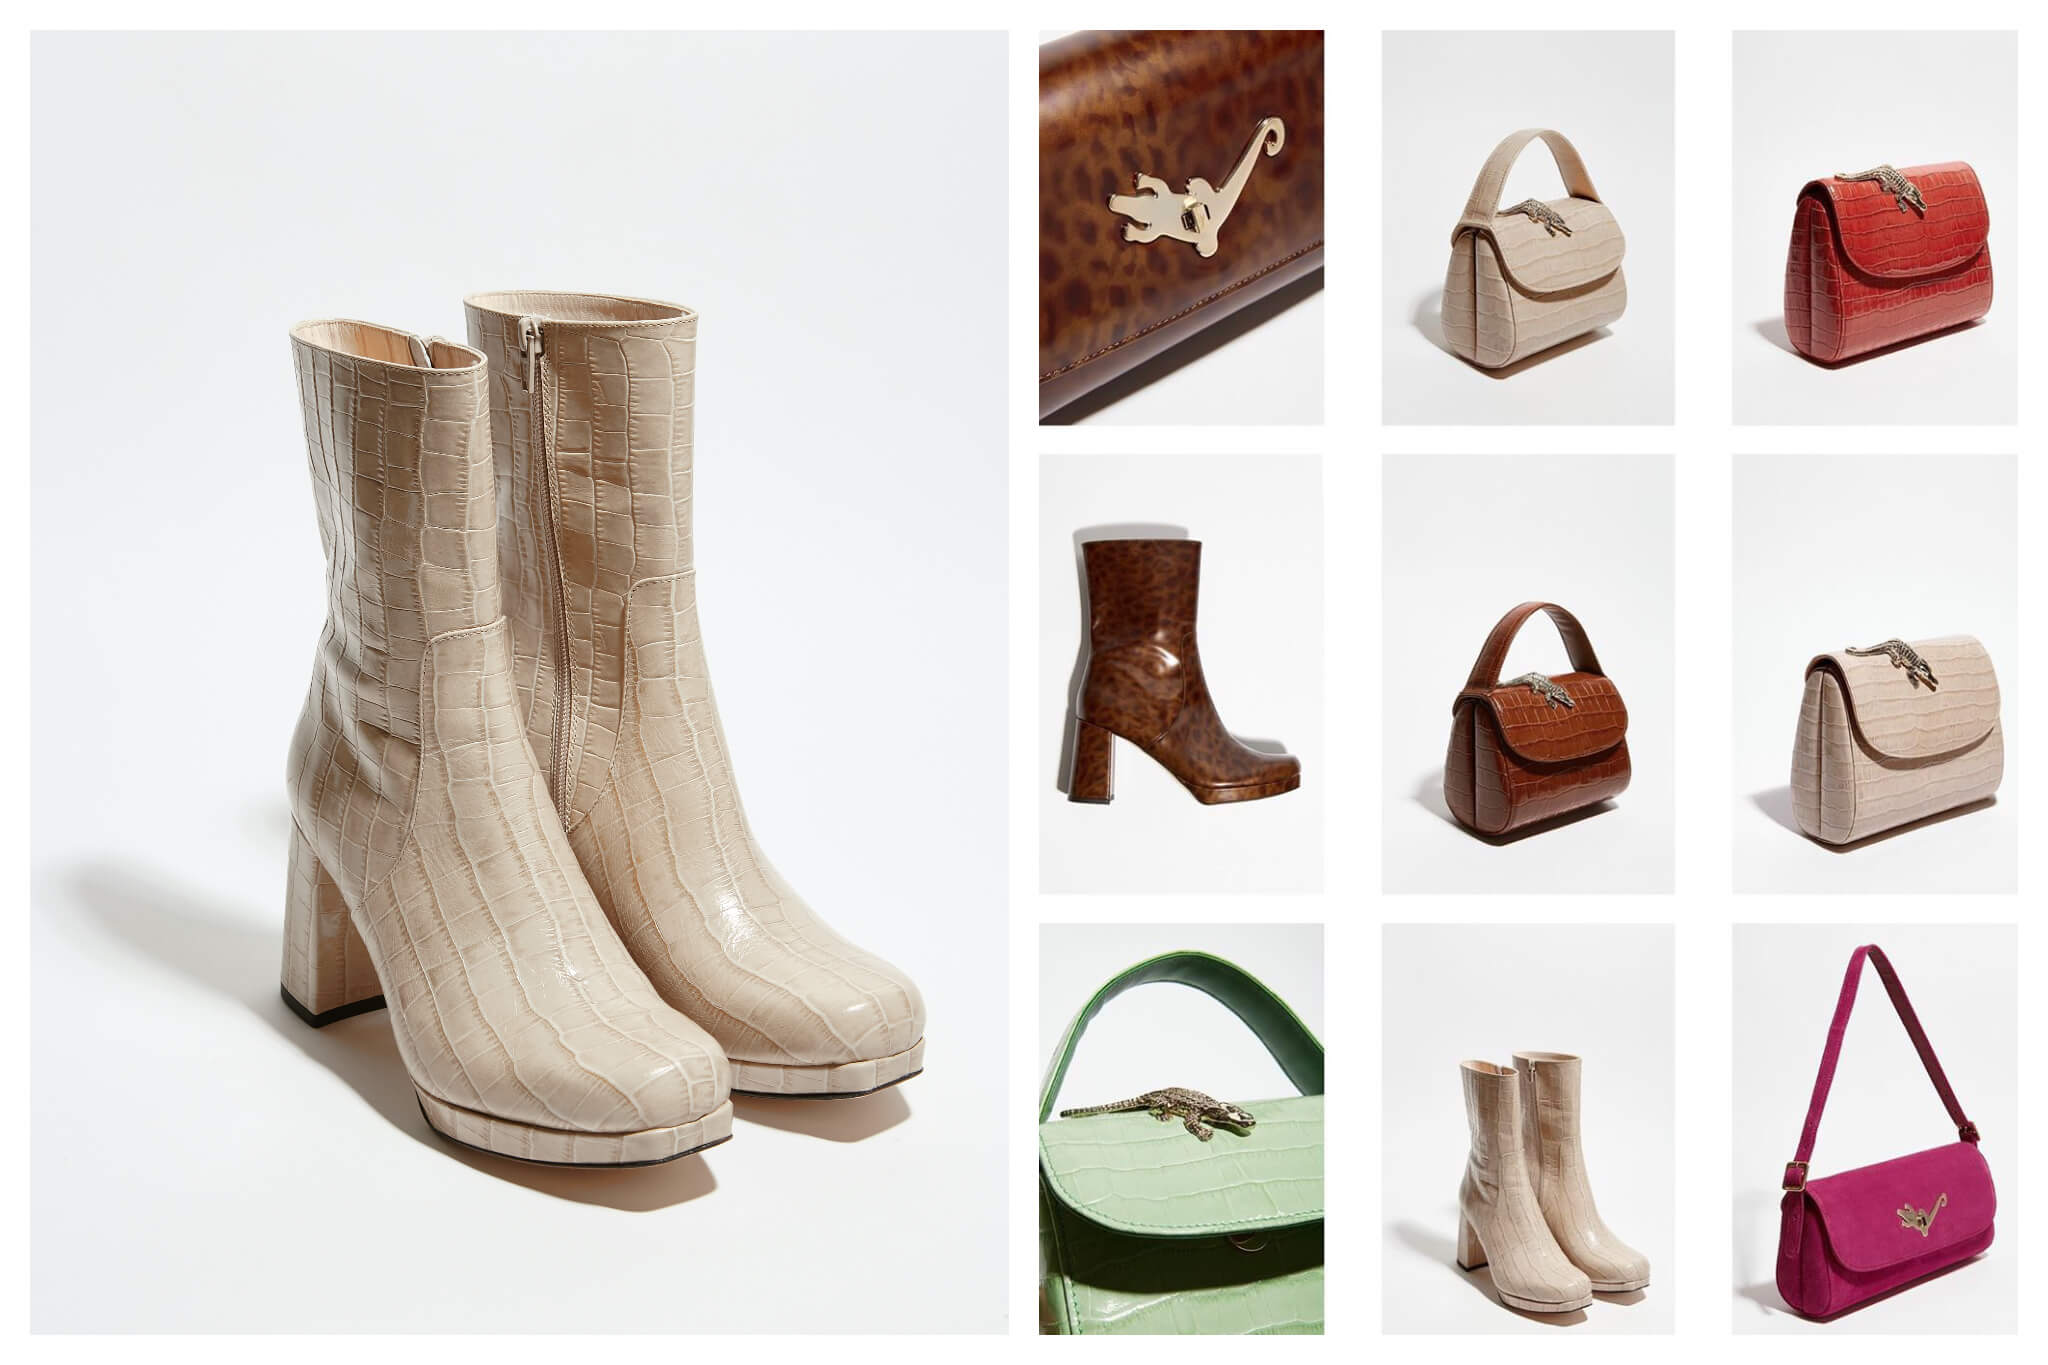 Left: a pair of beige boots.  Right: Assorted accessories including small purses and boots.